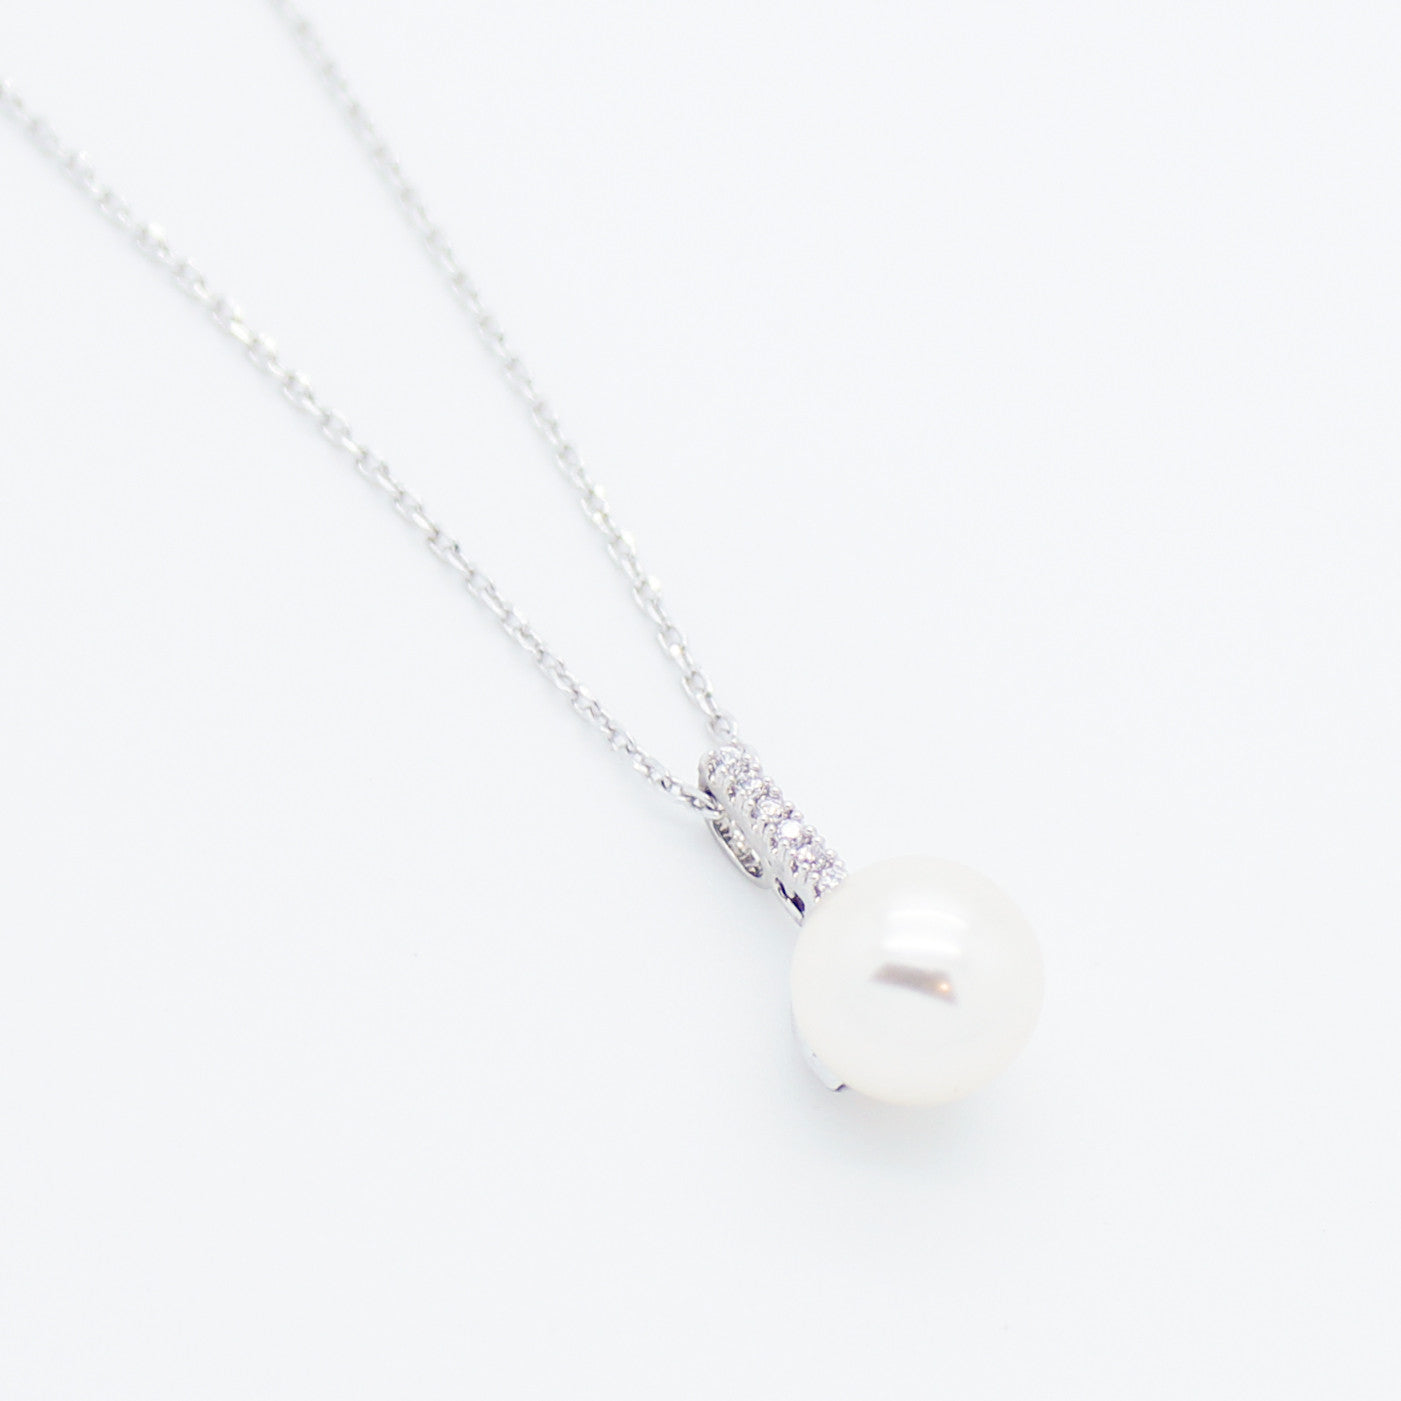 necklace freshwater birks pearl en white